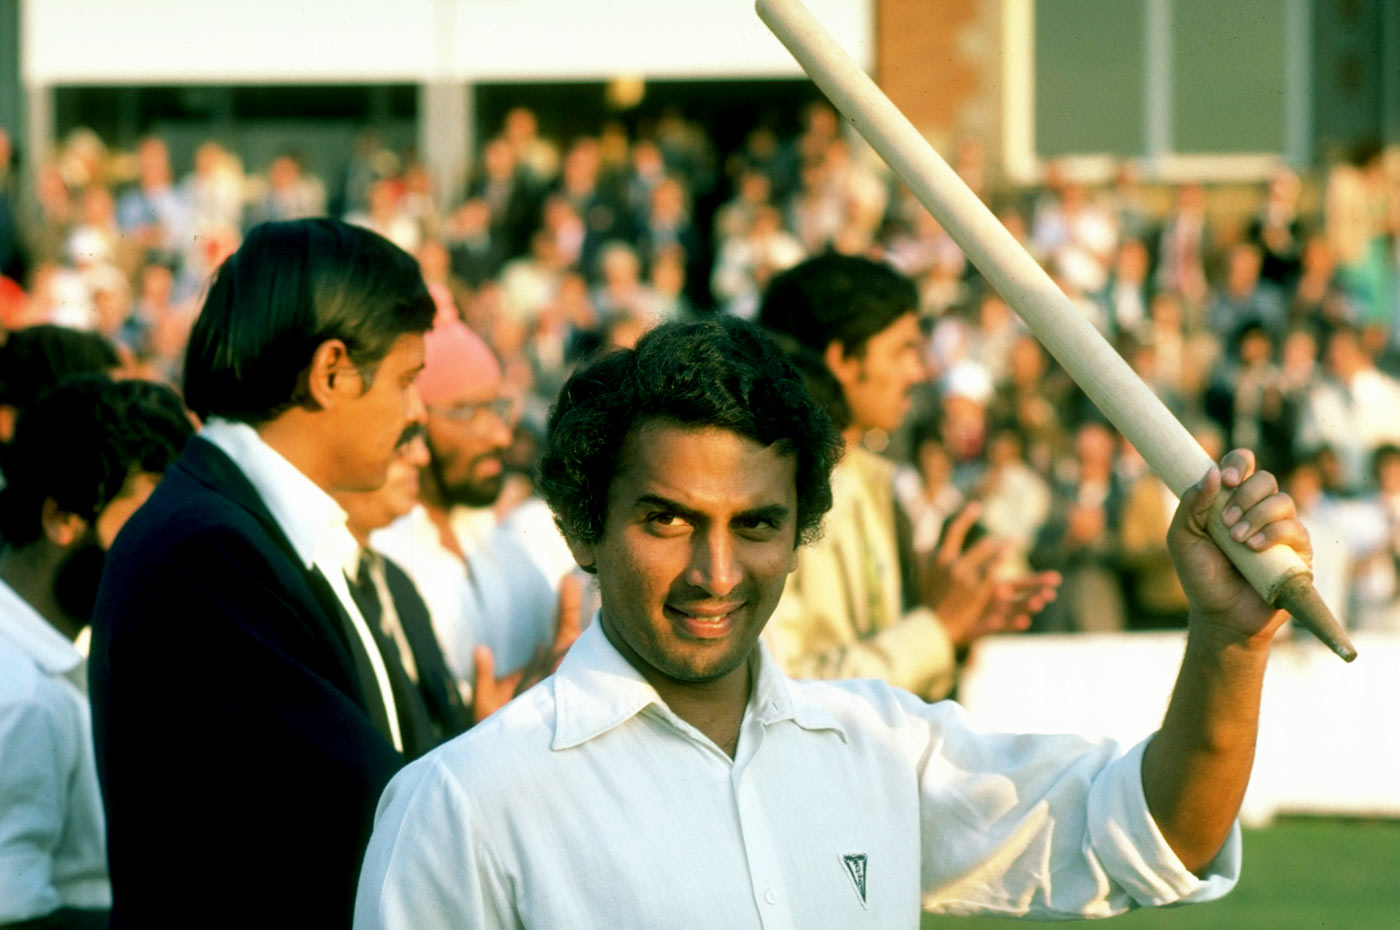 Sunil Gavaskar has the highest score by an Indian batsman at the Oval -221 in 1979 | Getty